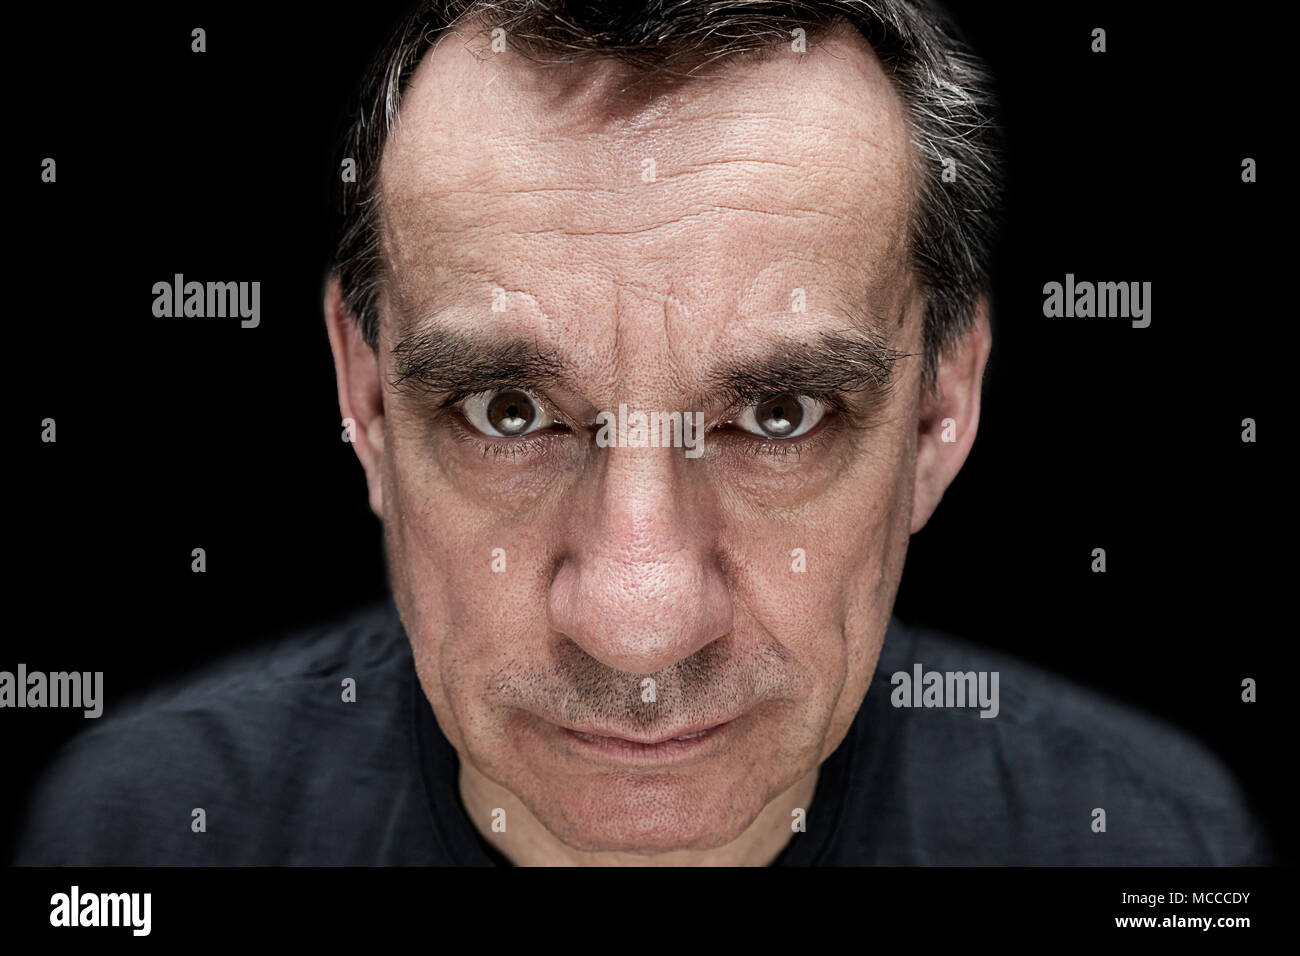 Dramatic high contrast portrait of angry menacing man - Stock Image